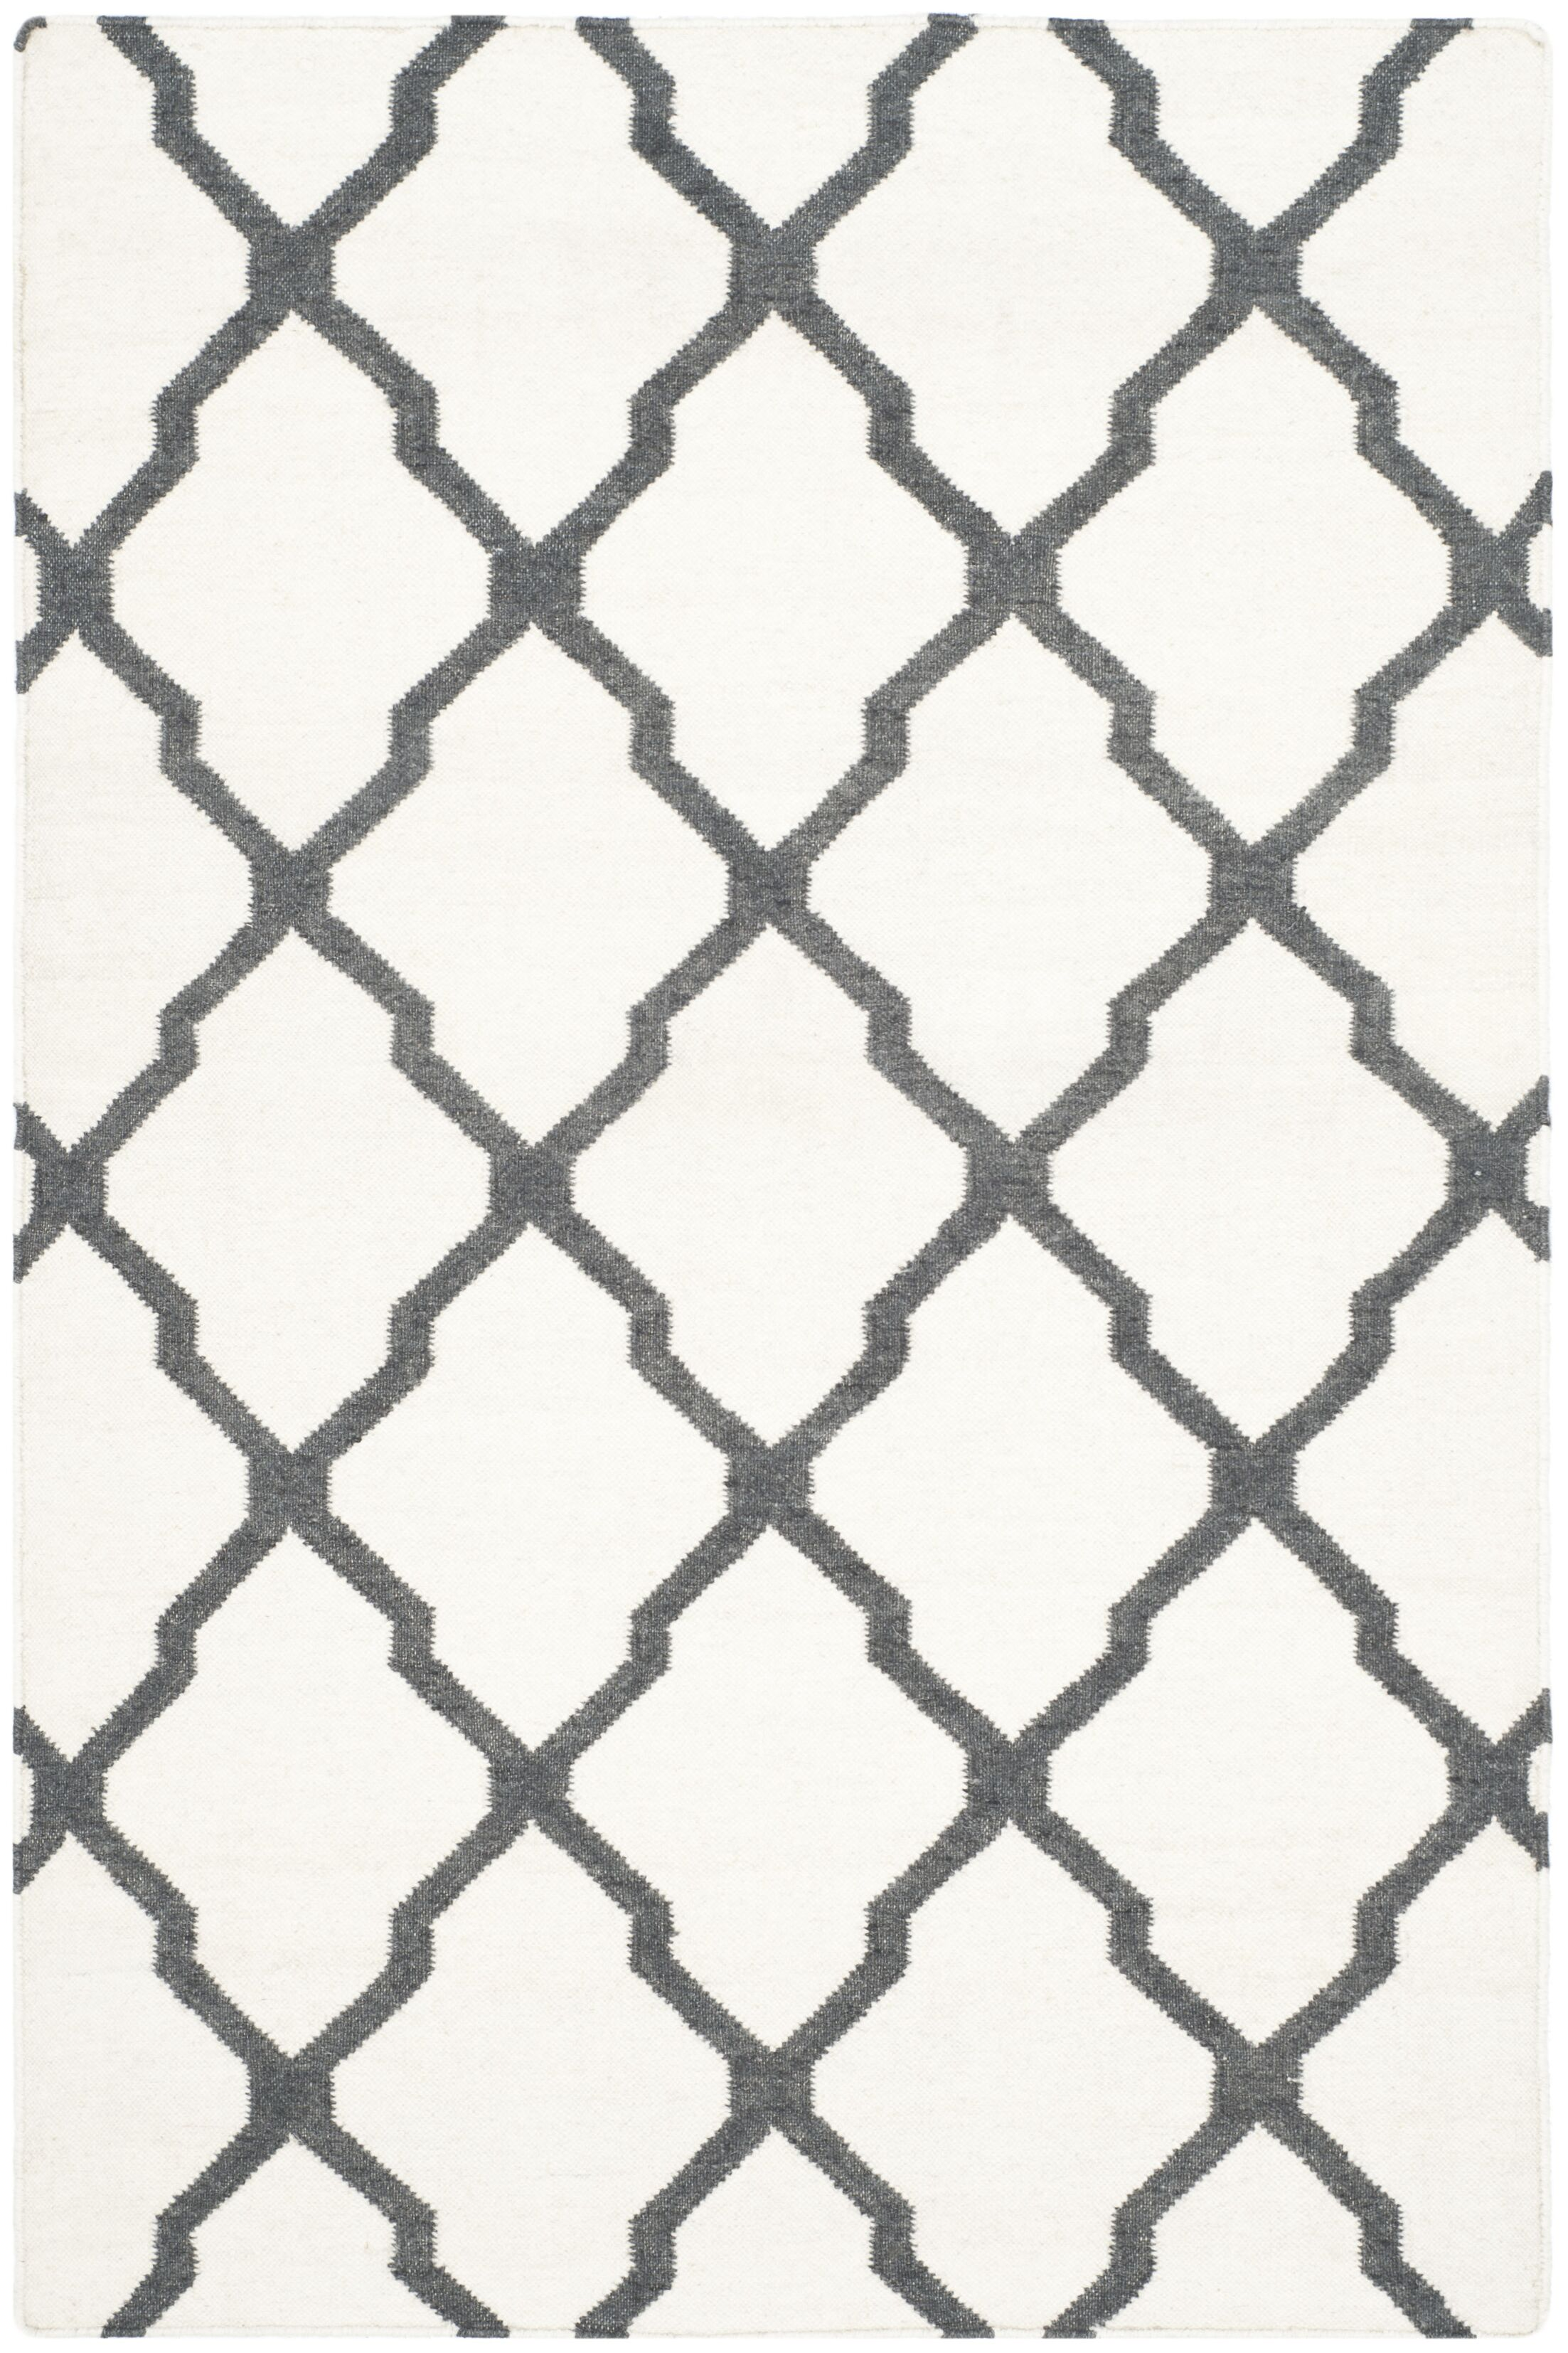 Dhurries Hand-Woven Wool Ivory/Charcoal Area Rug Rug Size: Rectangle 6' x 9'